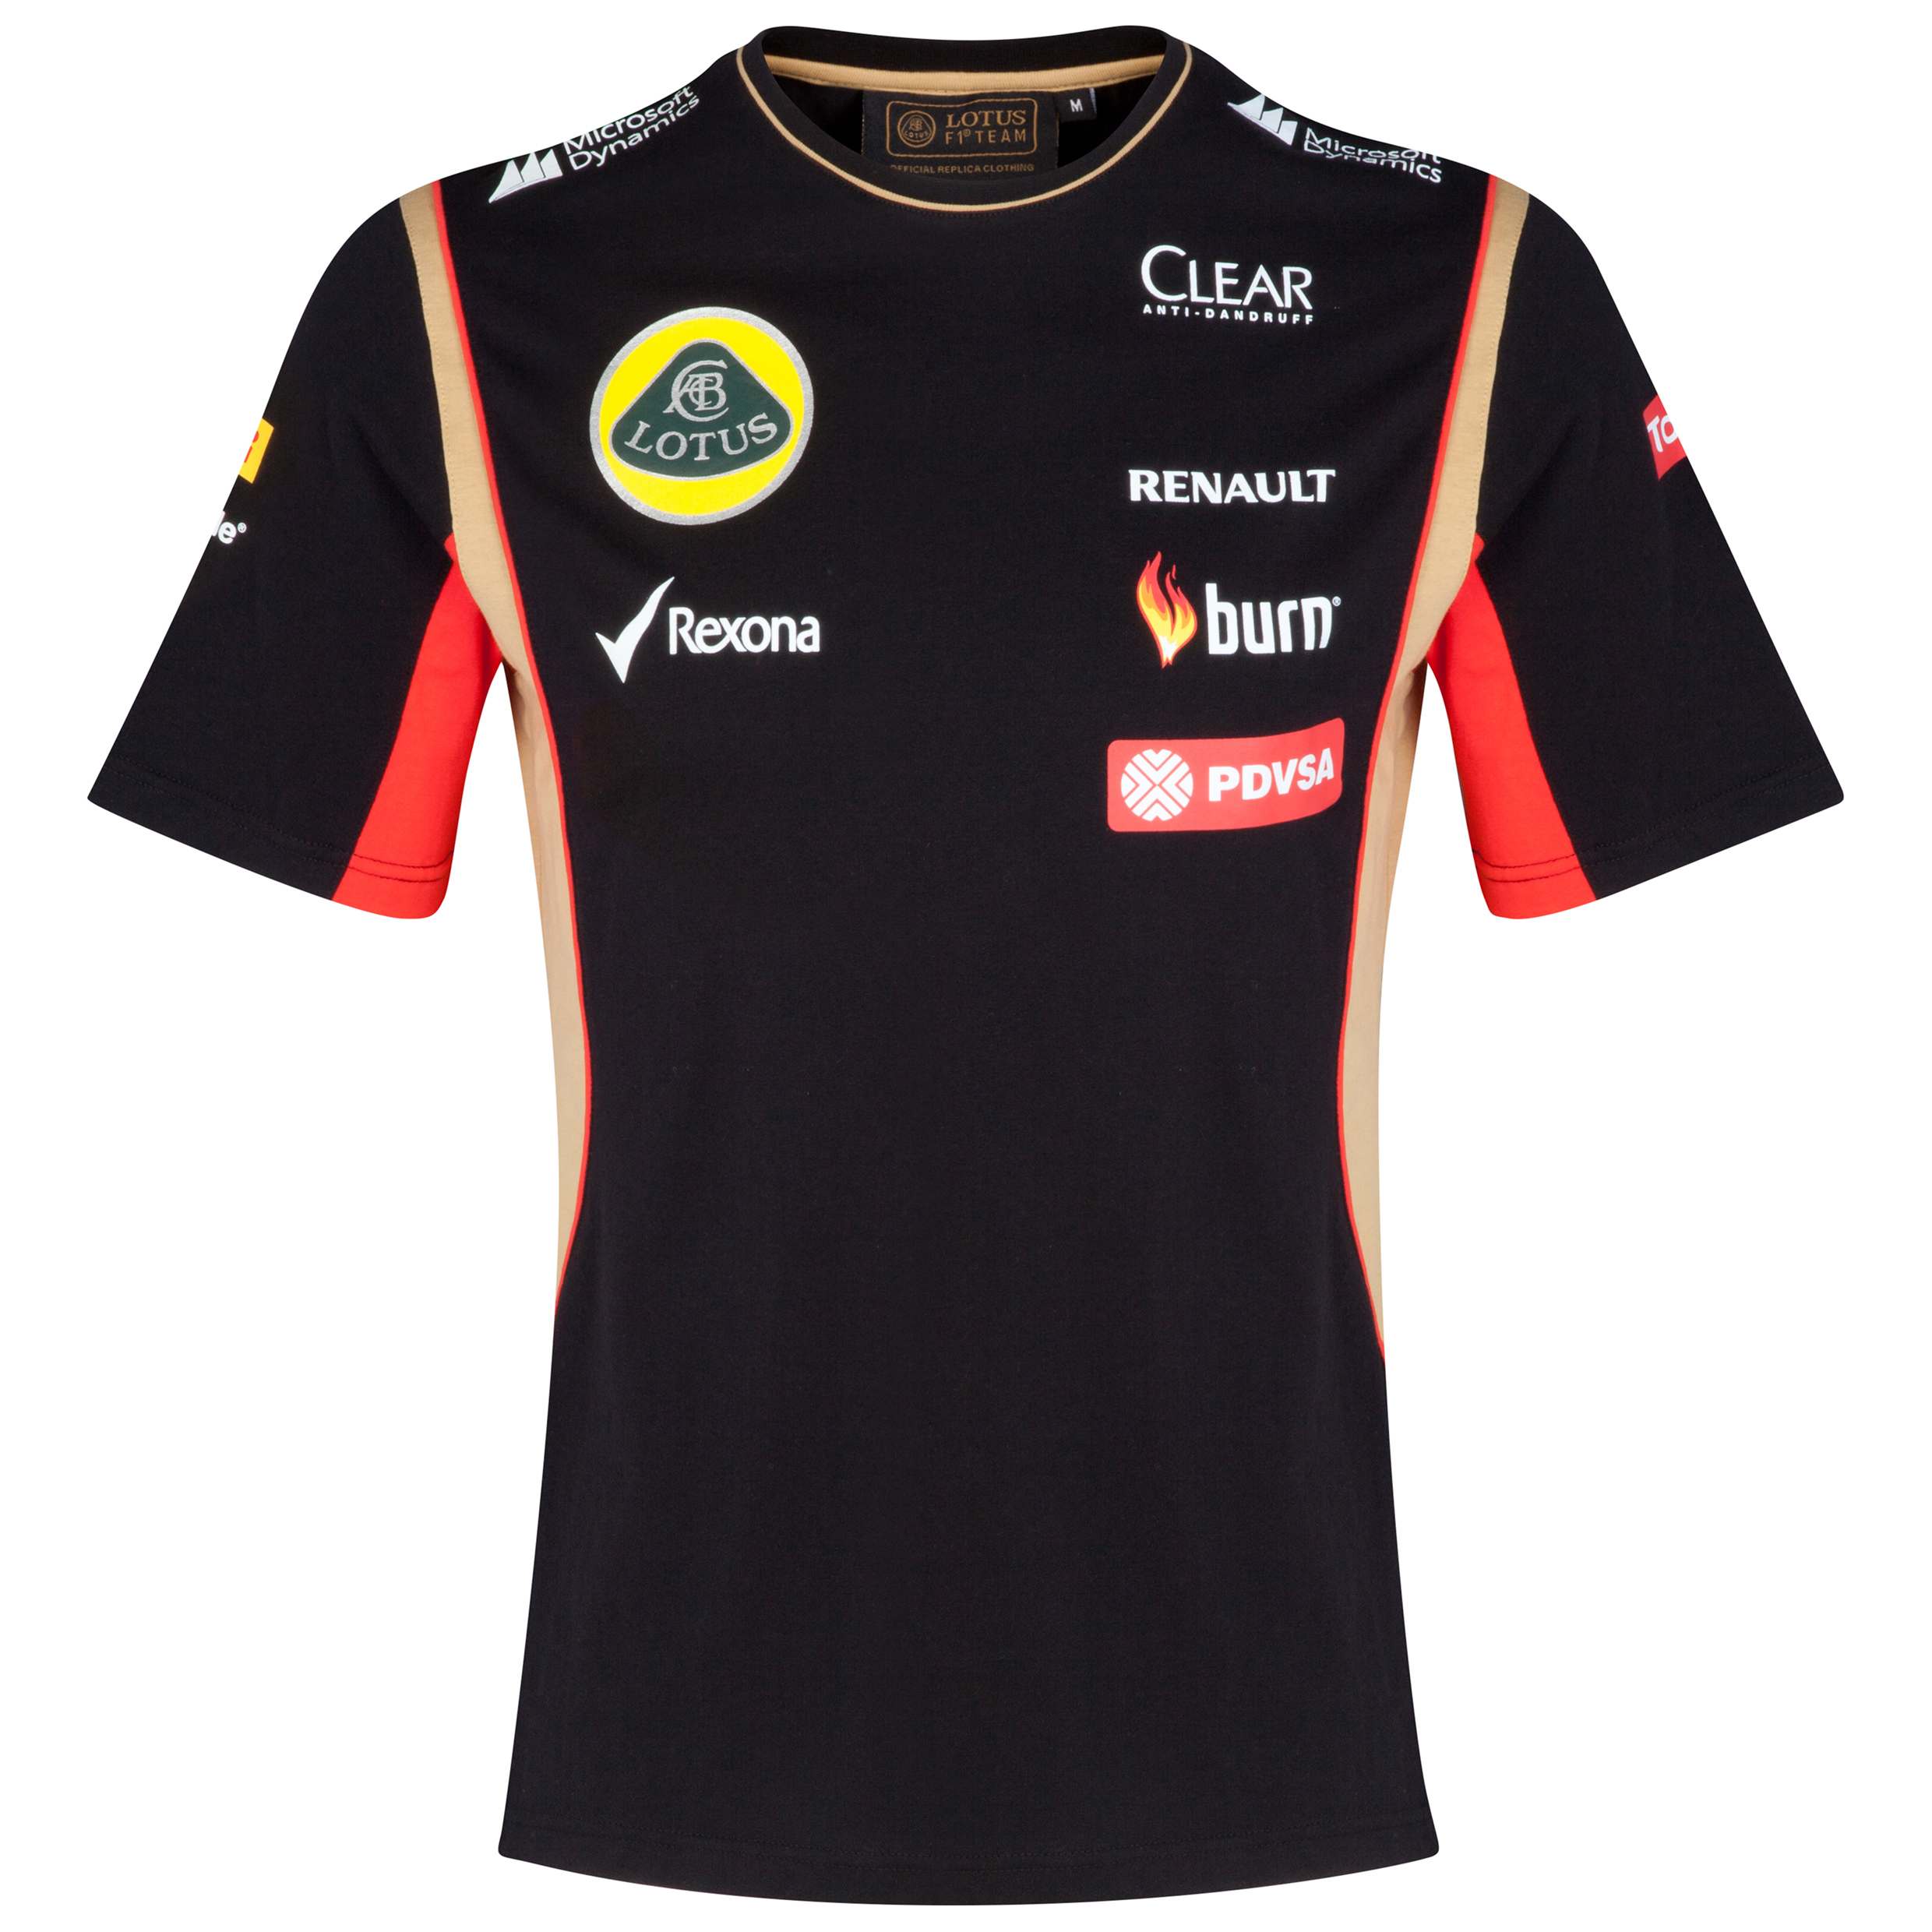 Lotus F1 Team Replica T-Shirt